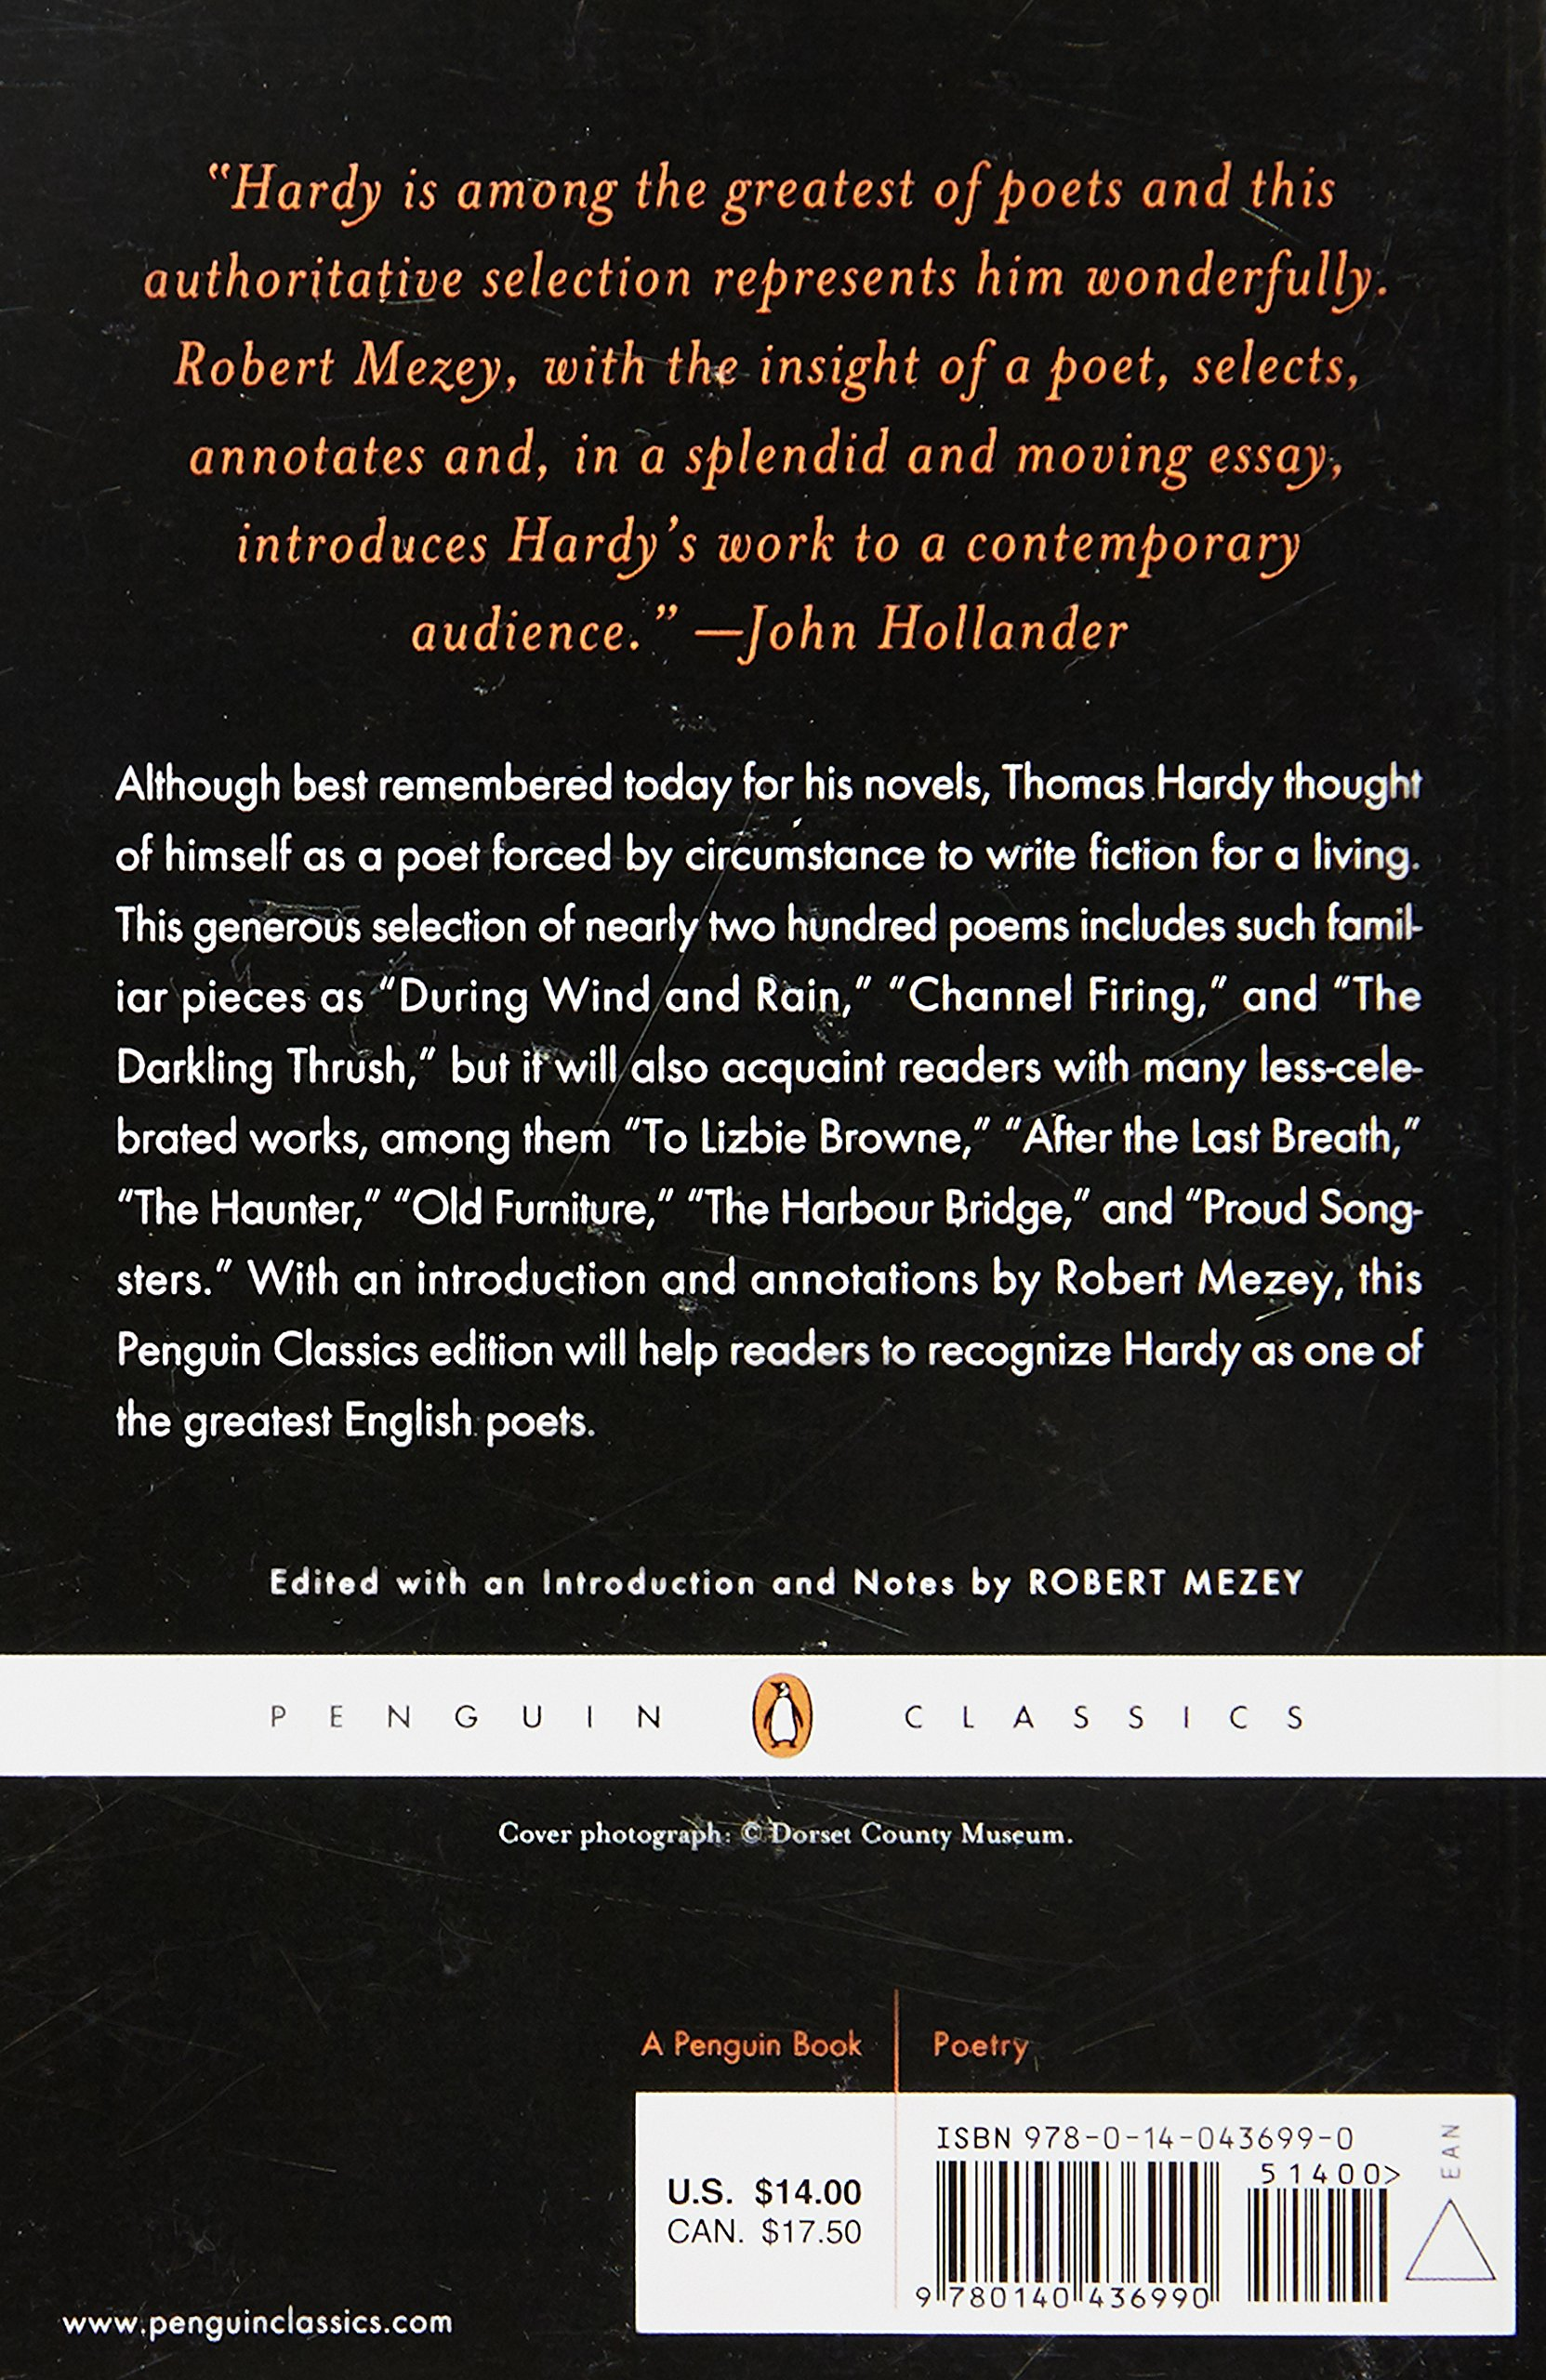 selected poems penguin classics thomas hardy robert mezey selected poems penguin classics thomas hardy robert mezey 9780140436990 amazon com books